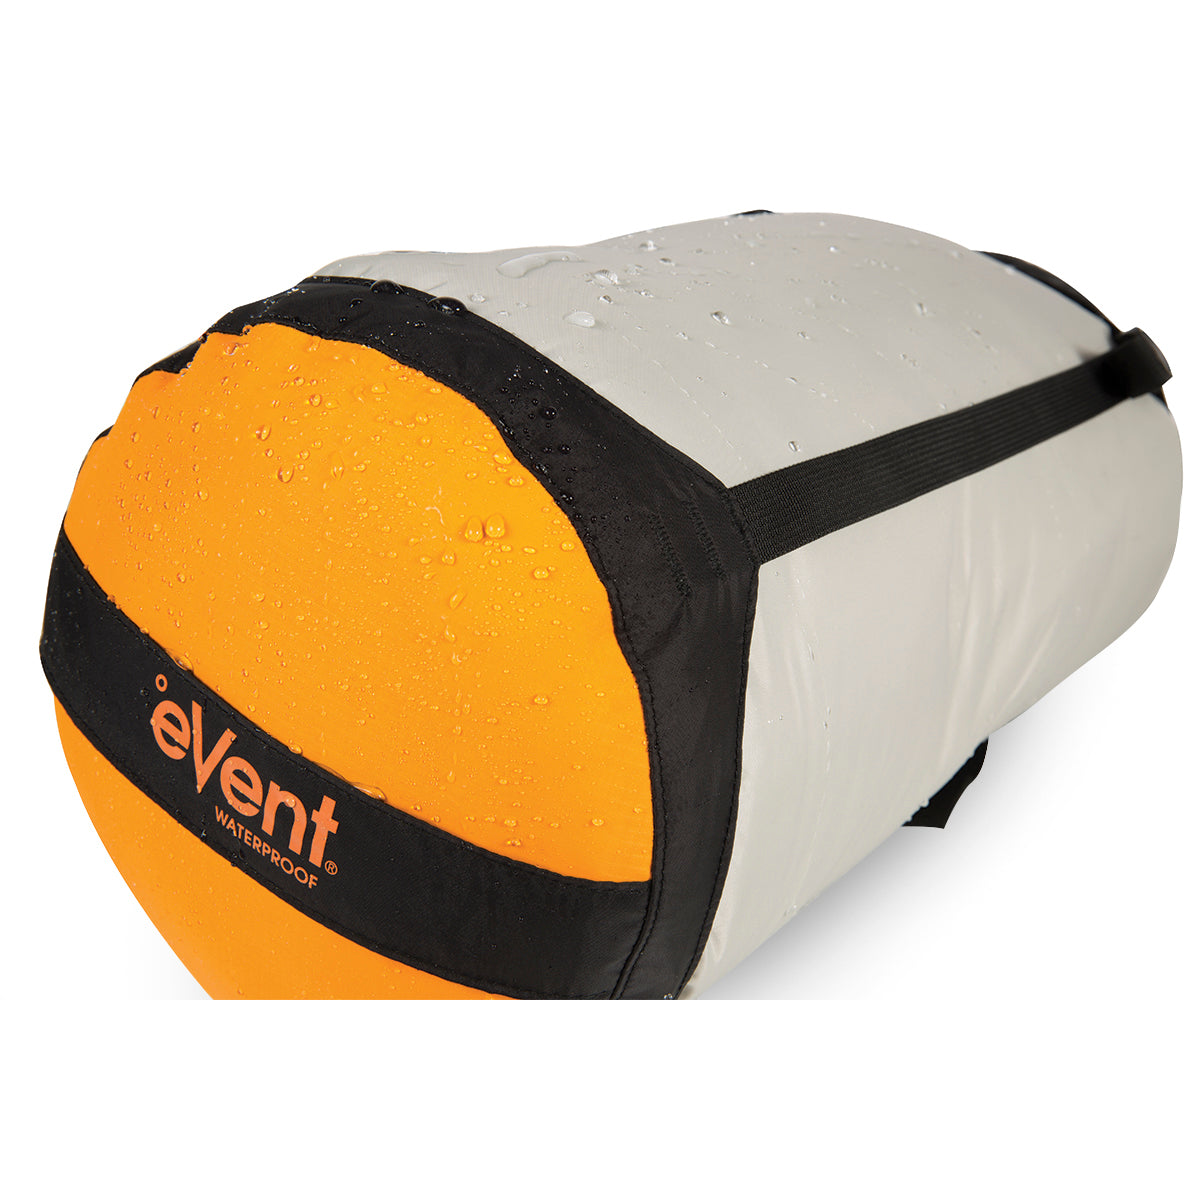 eVent Compression Dry Bag _ sleeping bag compression sack _ 2